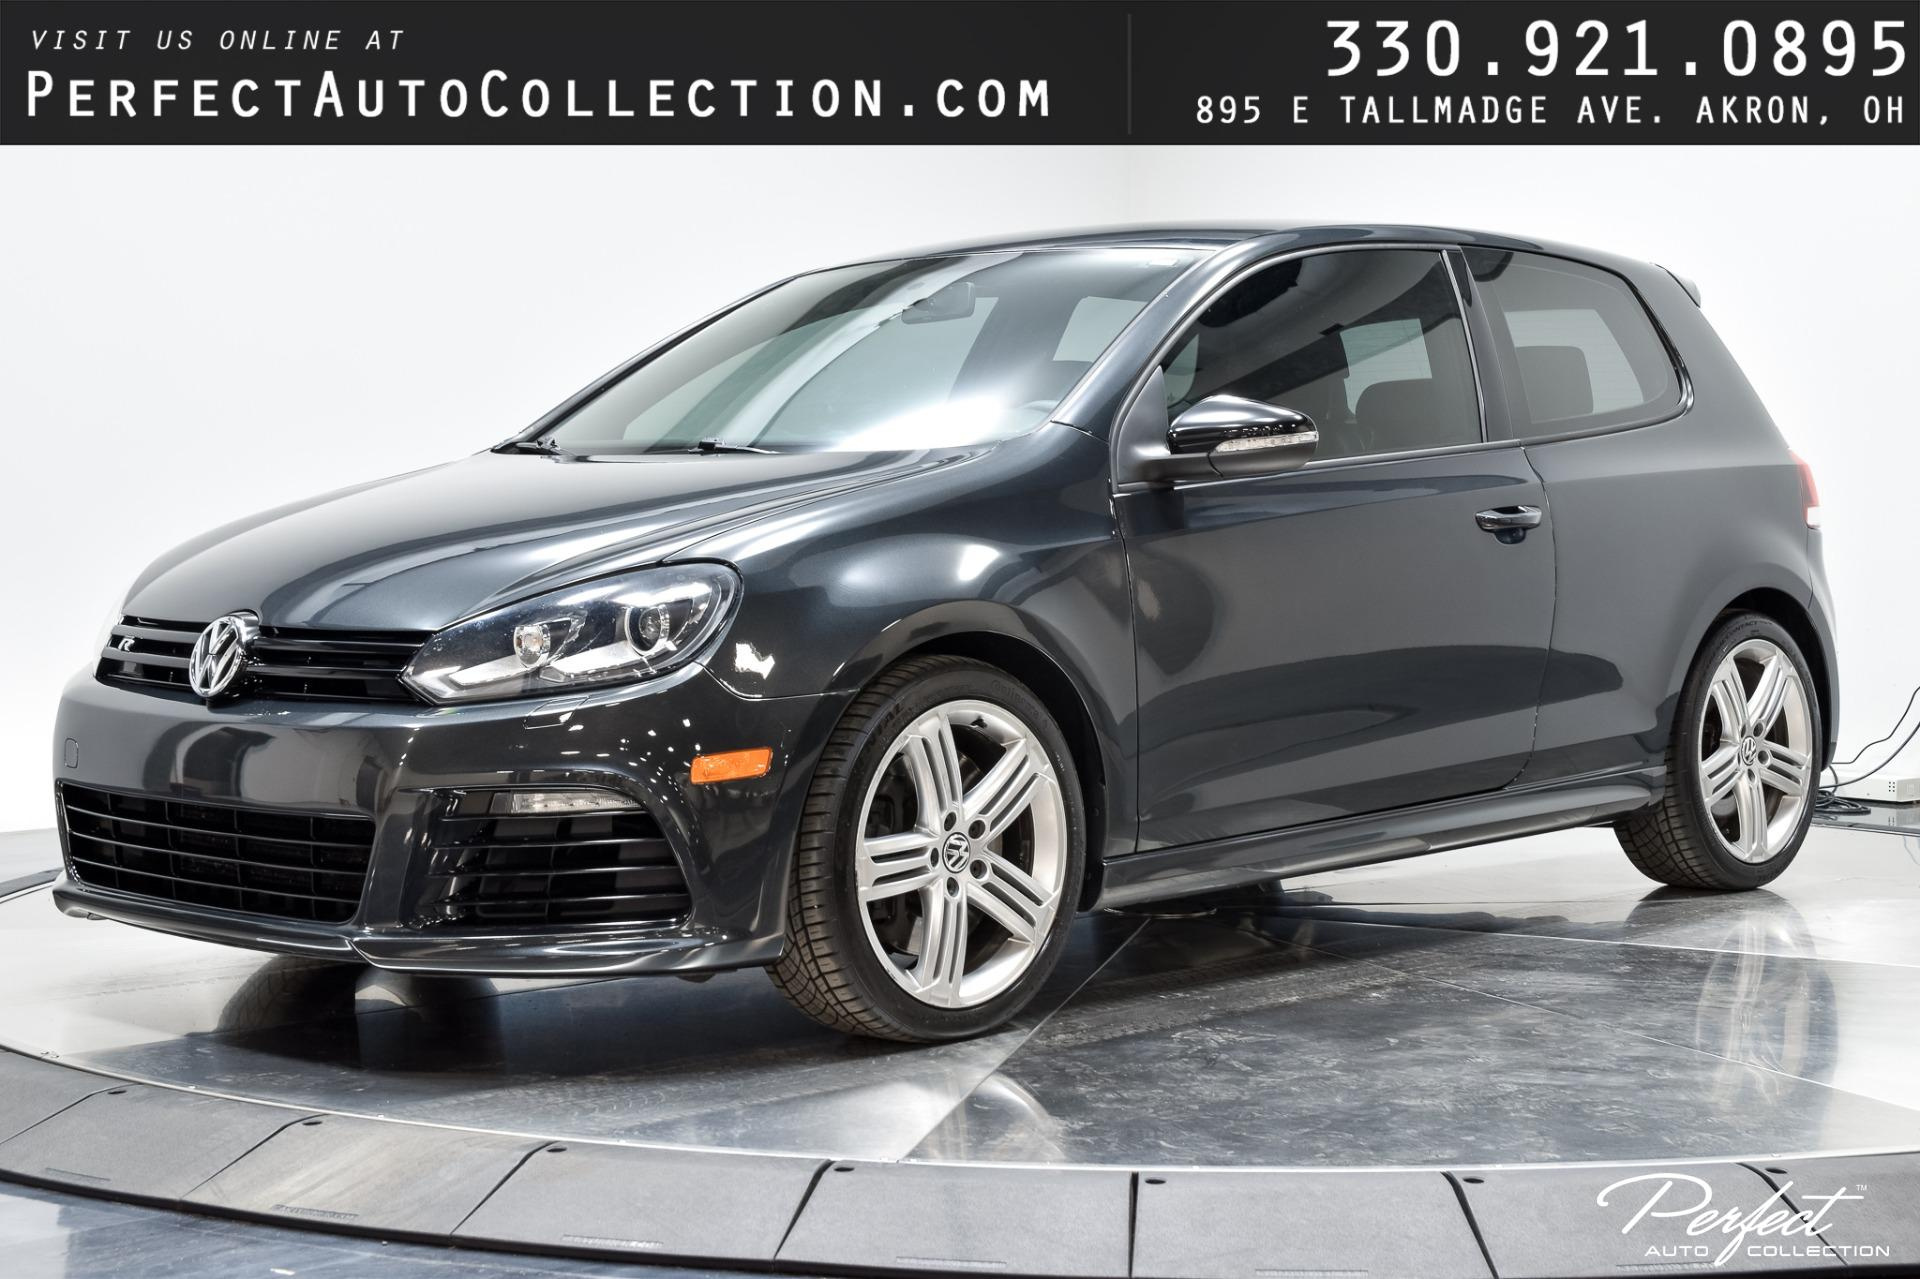 Used 2013 Volkswagen Golf R Base for sale $22,495 at Perfect Auto Collection in Akron OH 44310 1